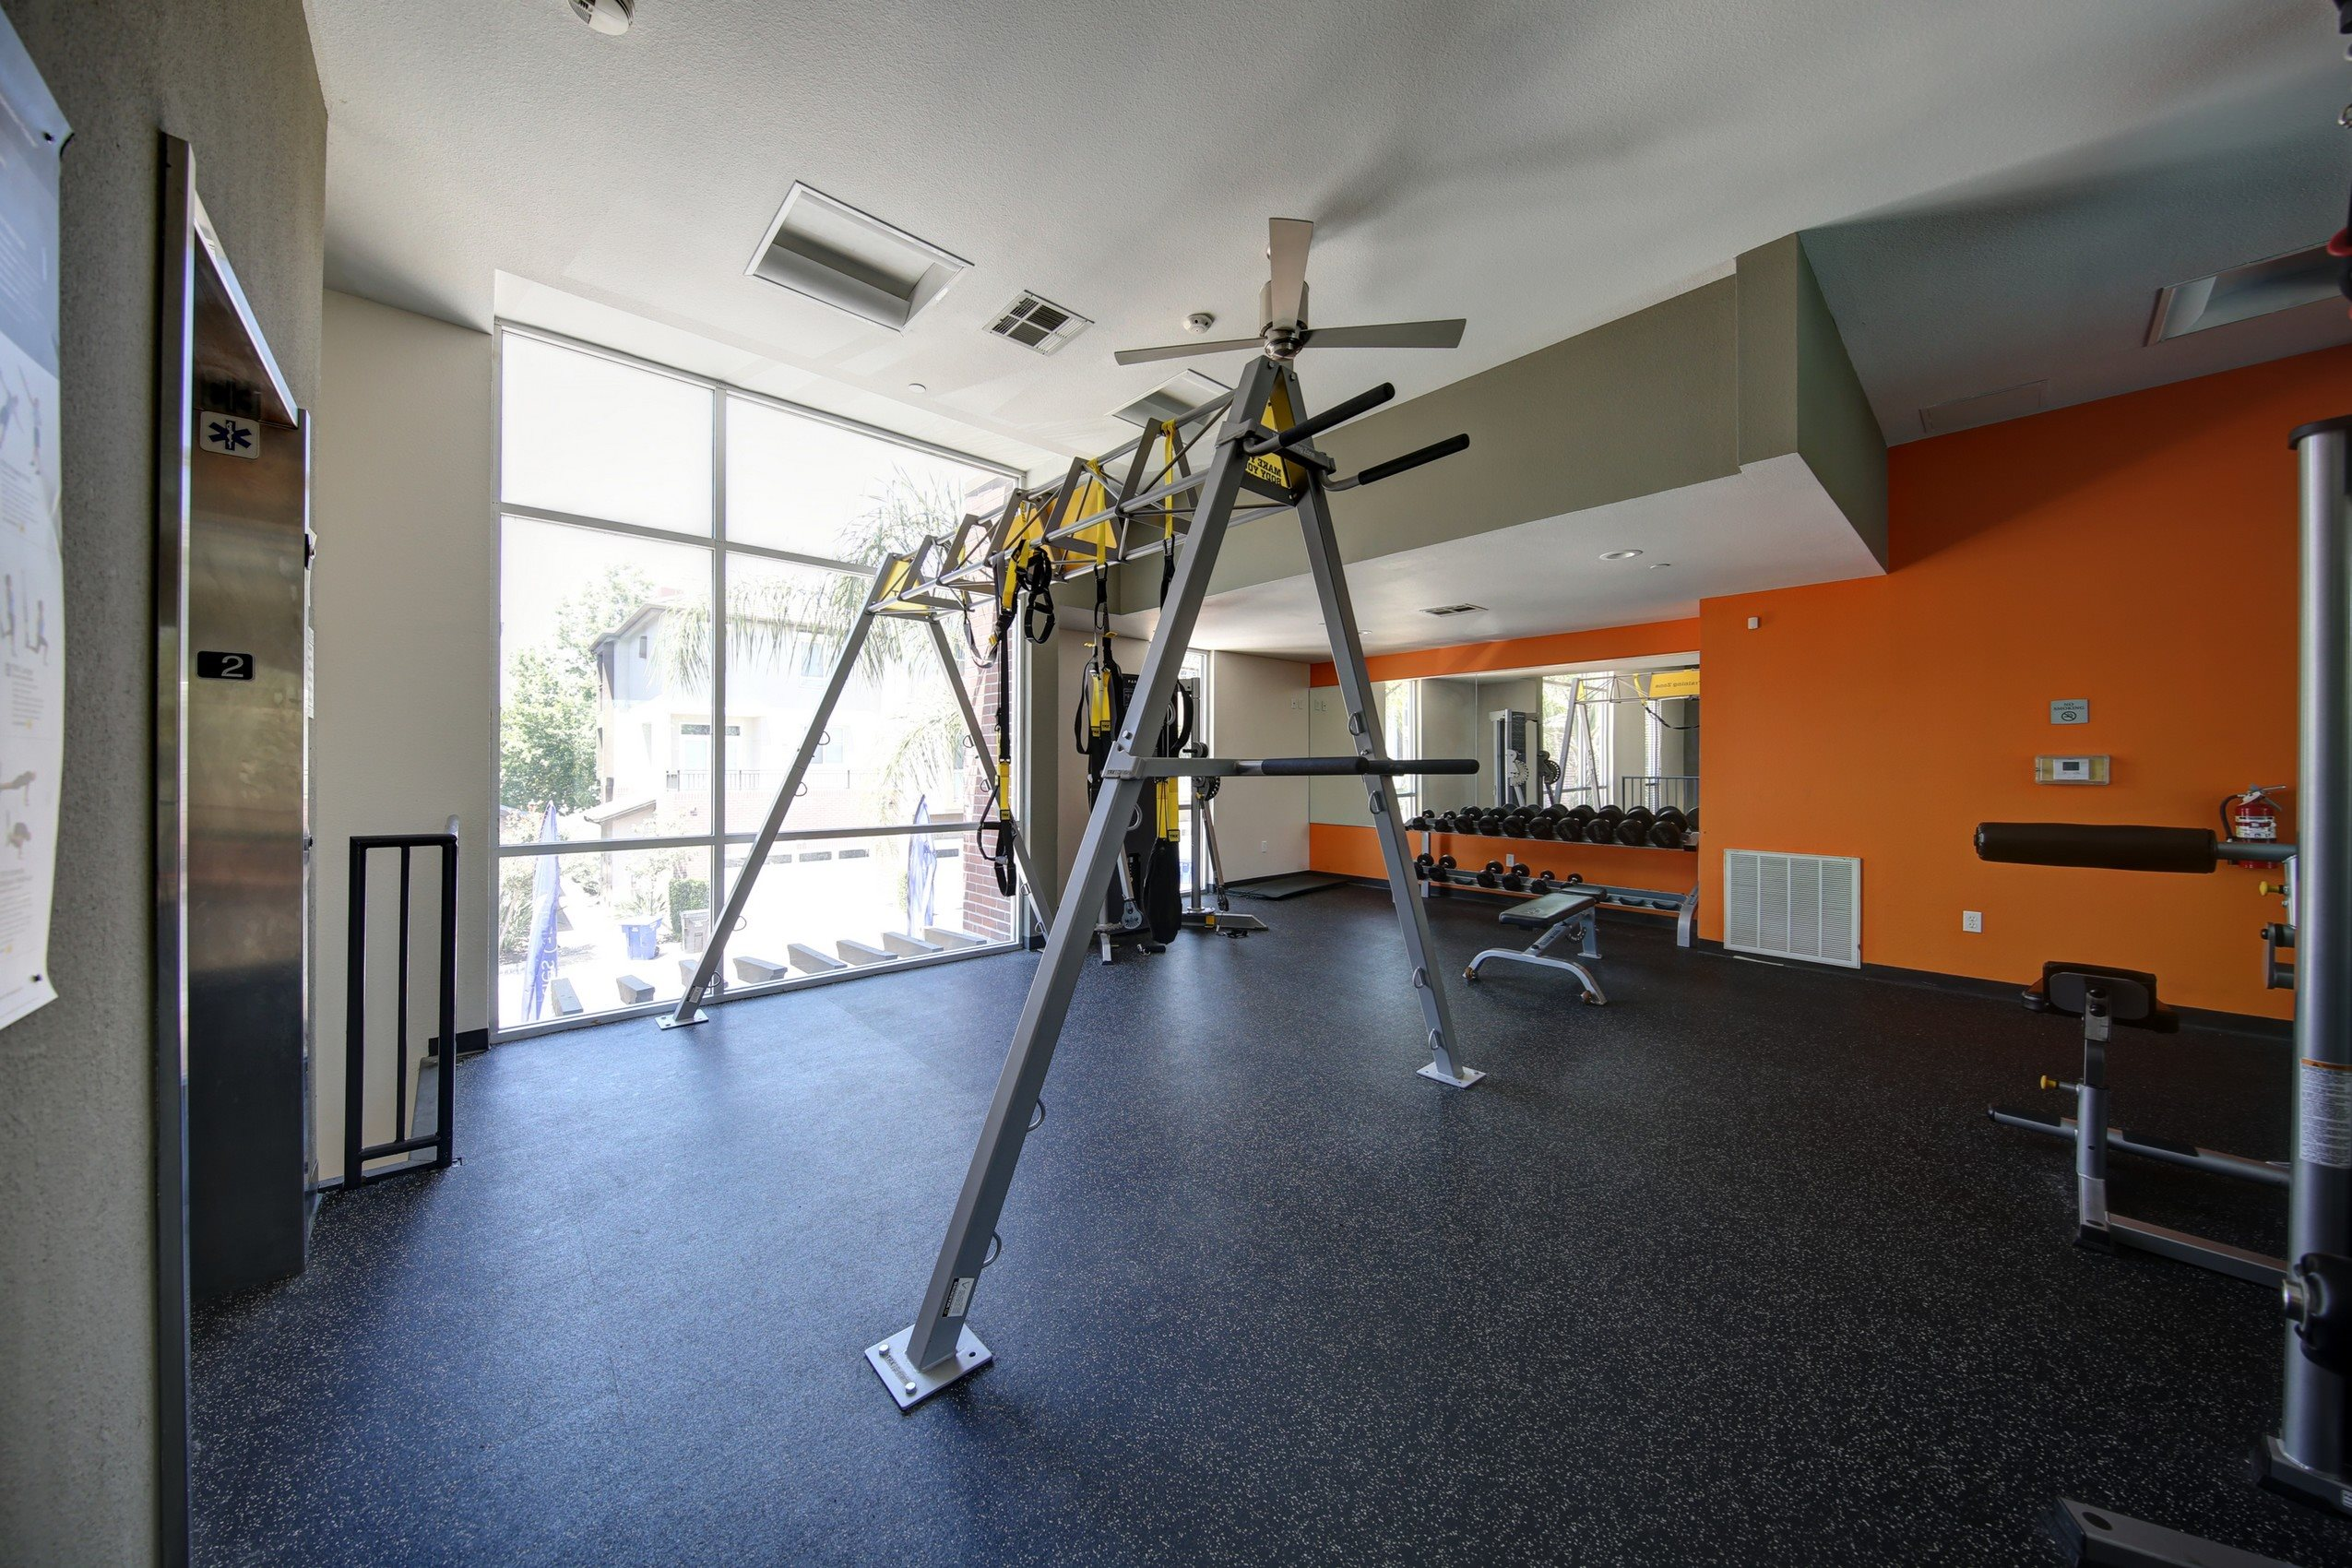 Health and Fitness Center at Ontario Town Square Townhomes, 380 East Bluebird Privado, CA